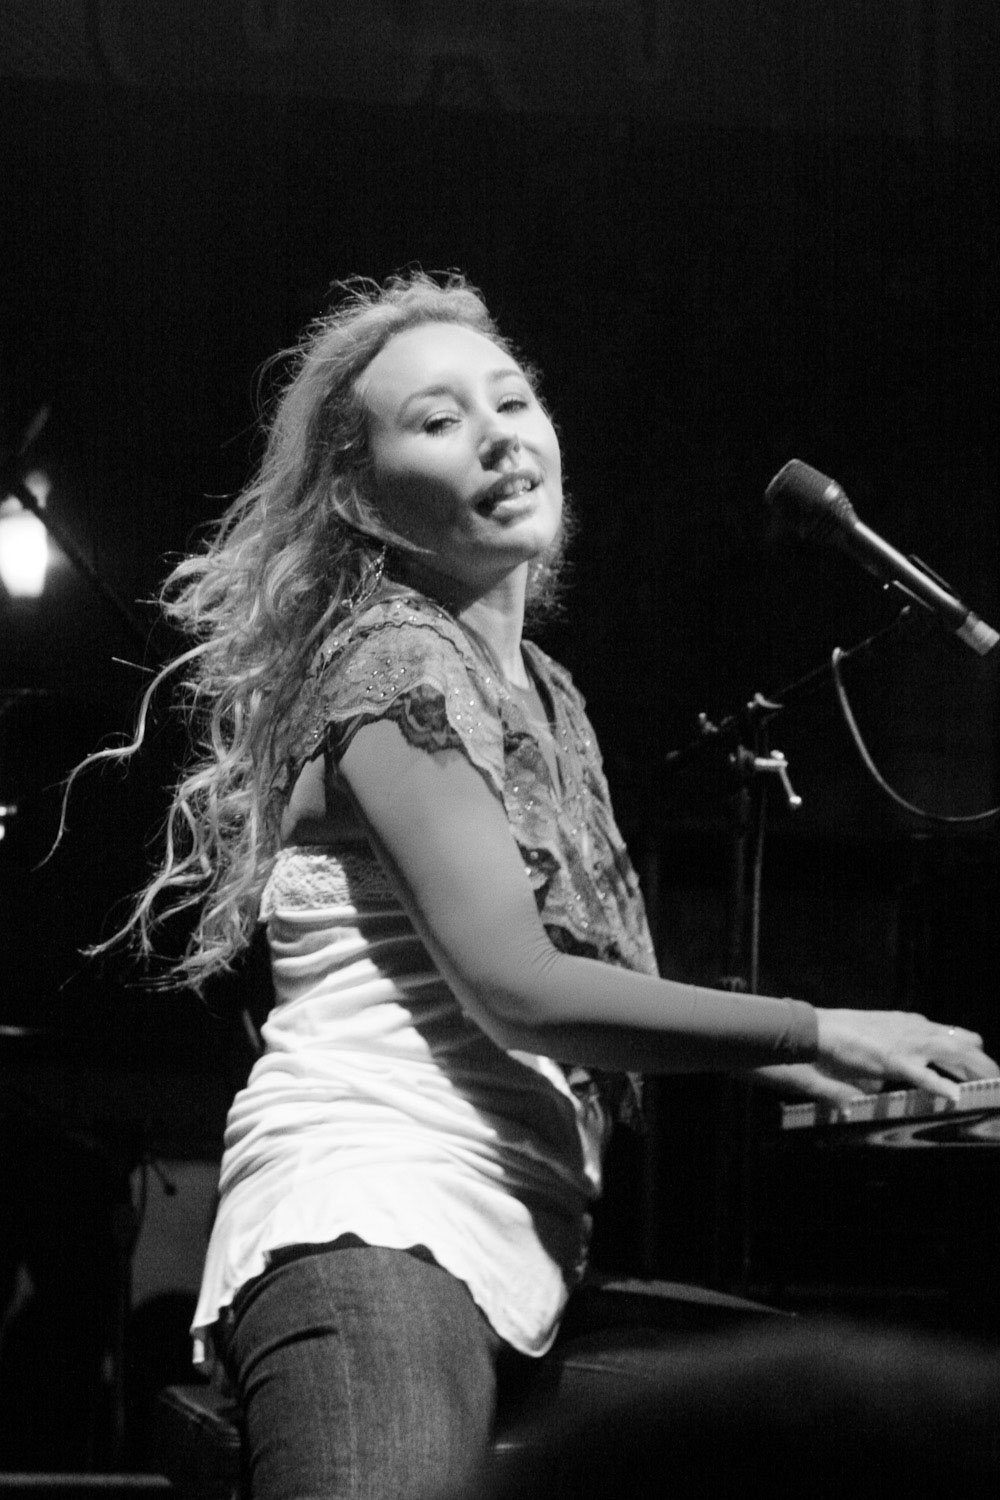 Tori Amos sings and plays piano at a concert in Portland Oregon.